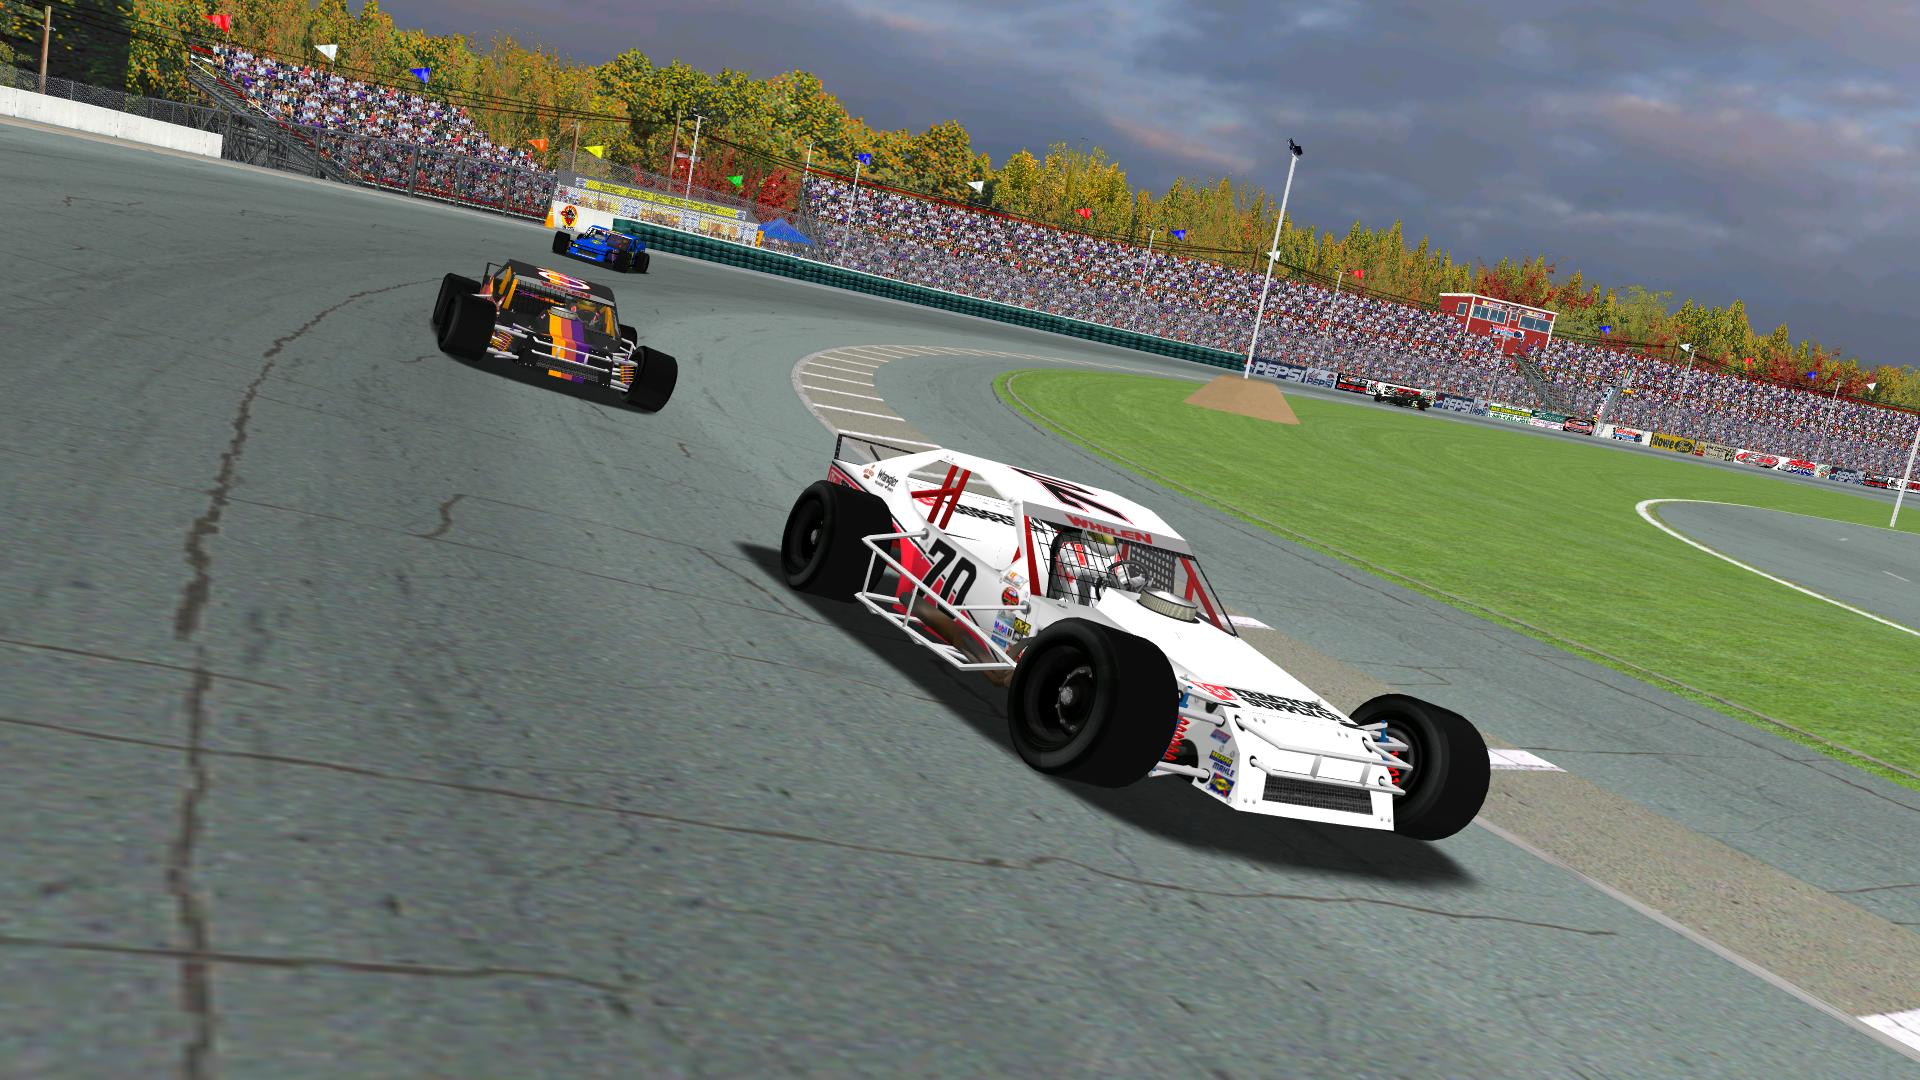 puttzracer and Rookiesrock pursue lepage71 in the closing laps at Beech Ridge. (NHMA)